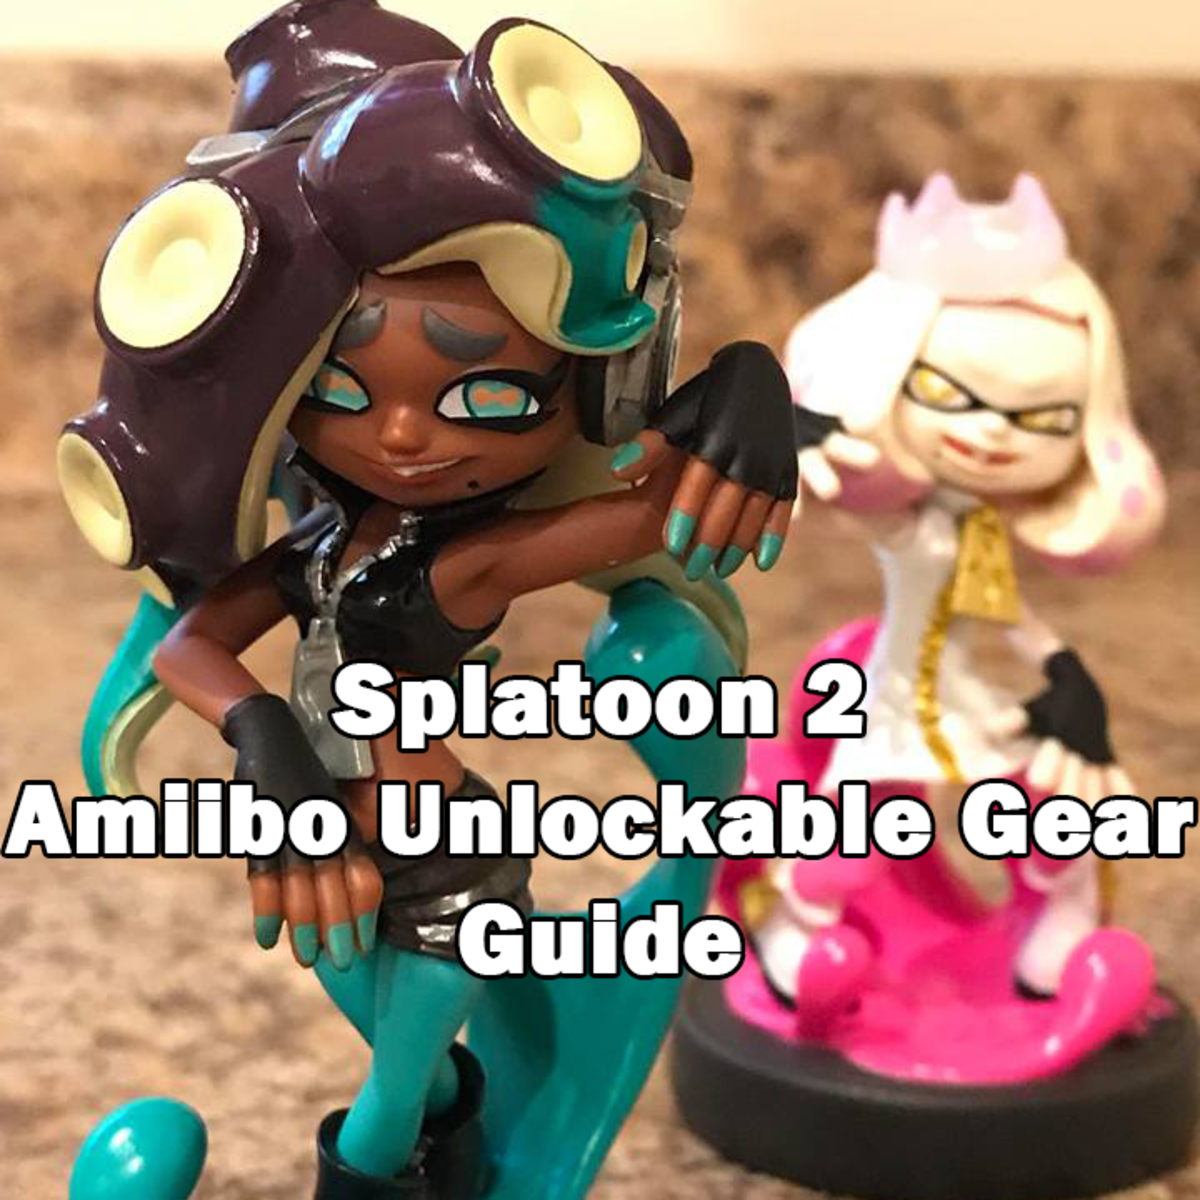 Splatoon 2 Amiibo Unlockable Gear Guide